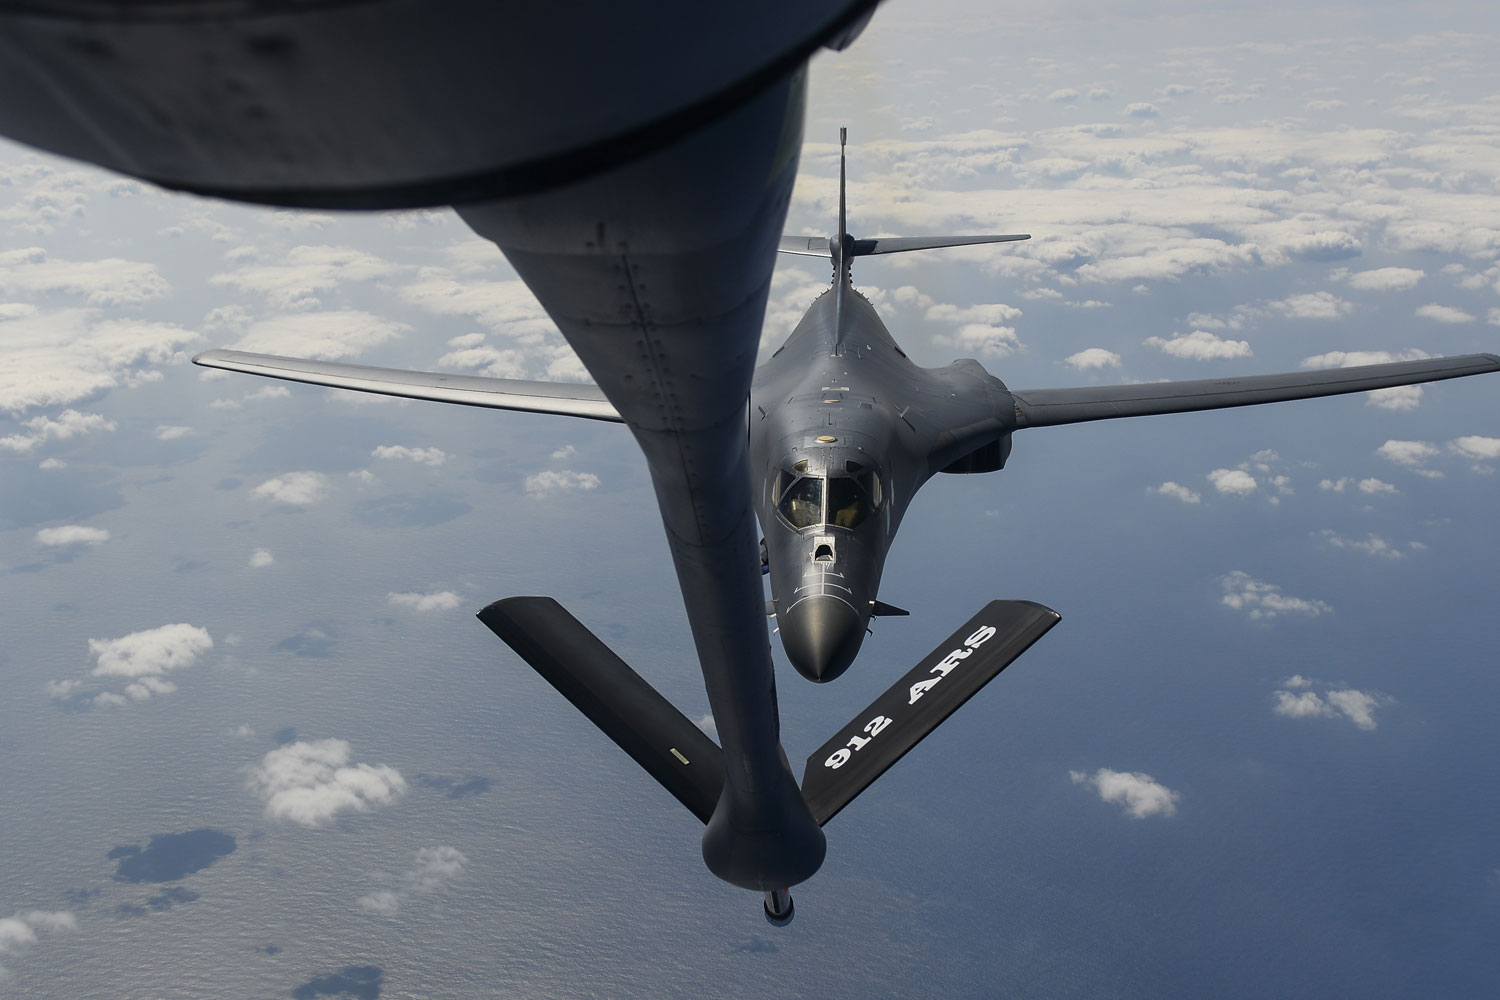 To Make Way for Future Bomber, AF Plans to Retire B-1, B-2 in 2030s